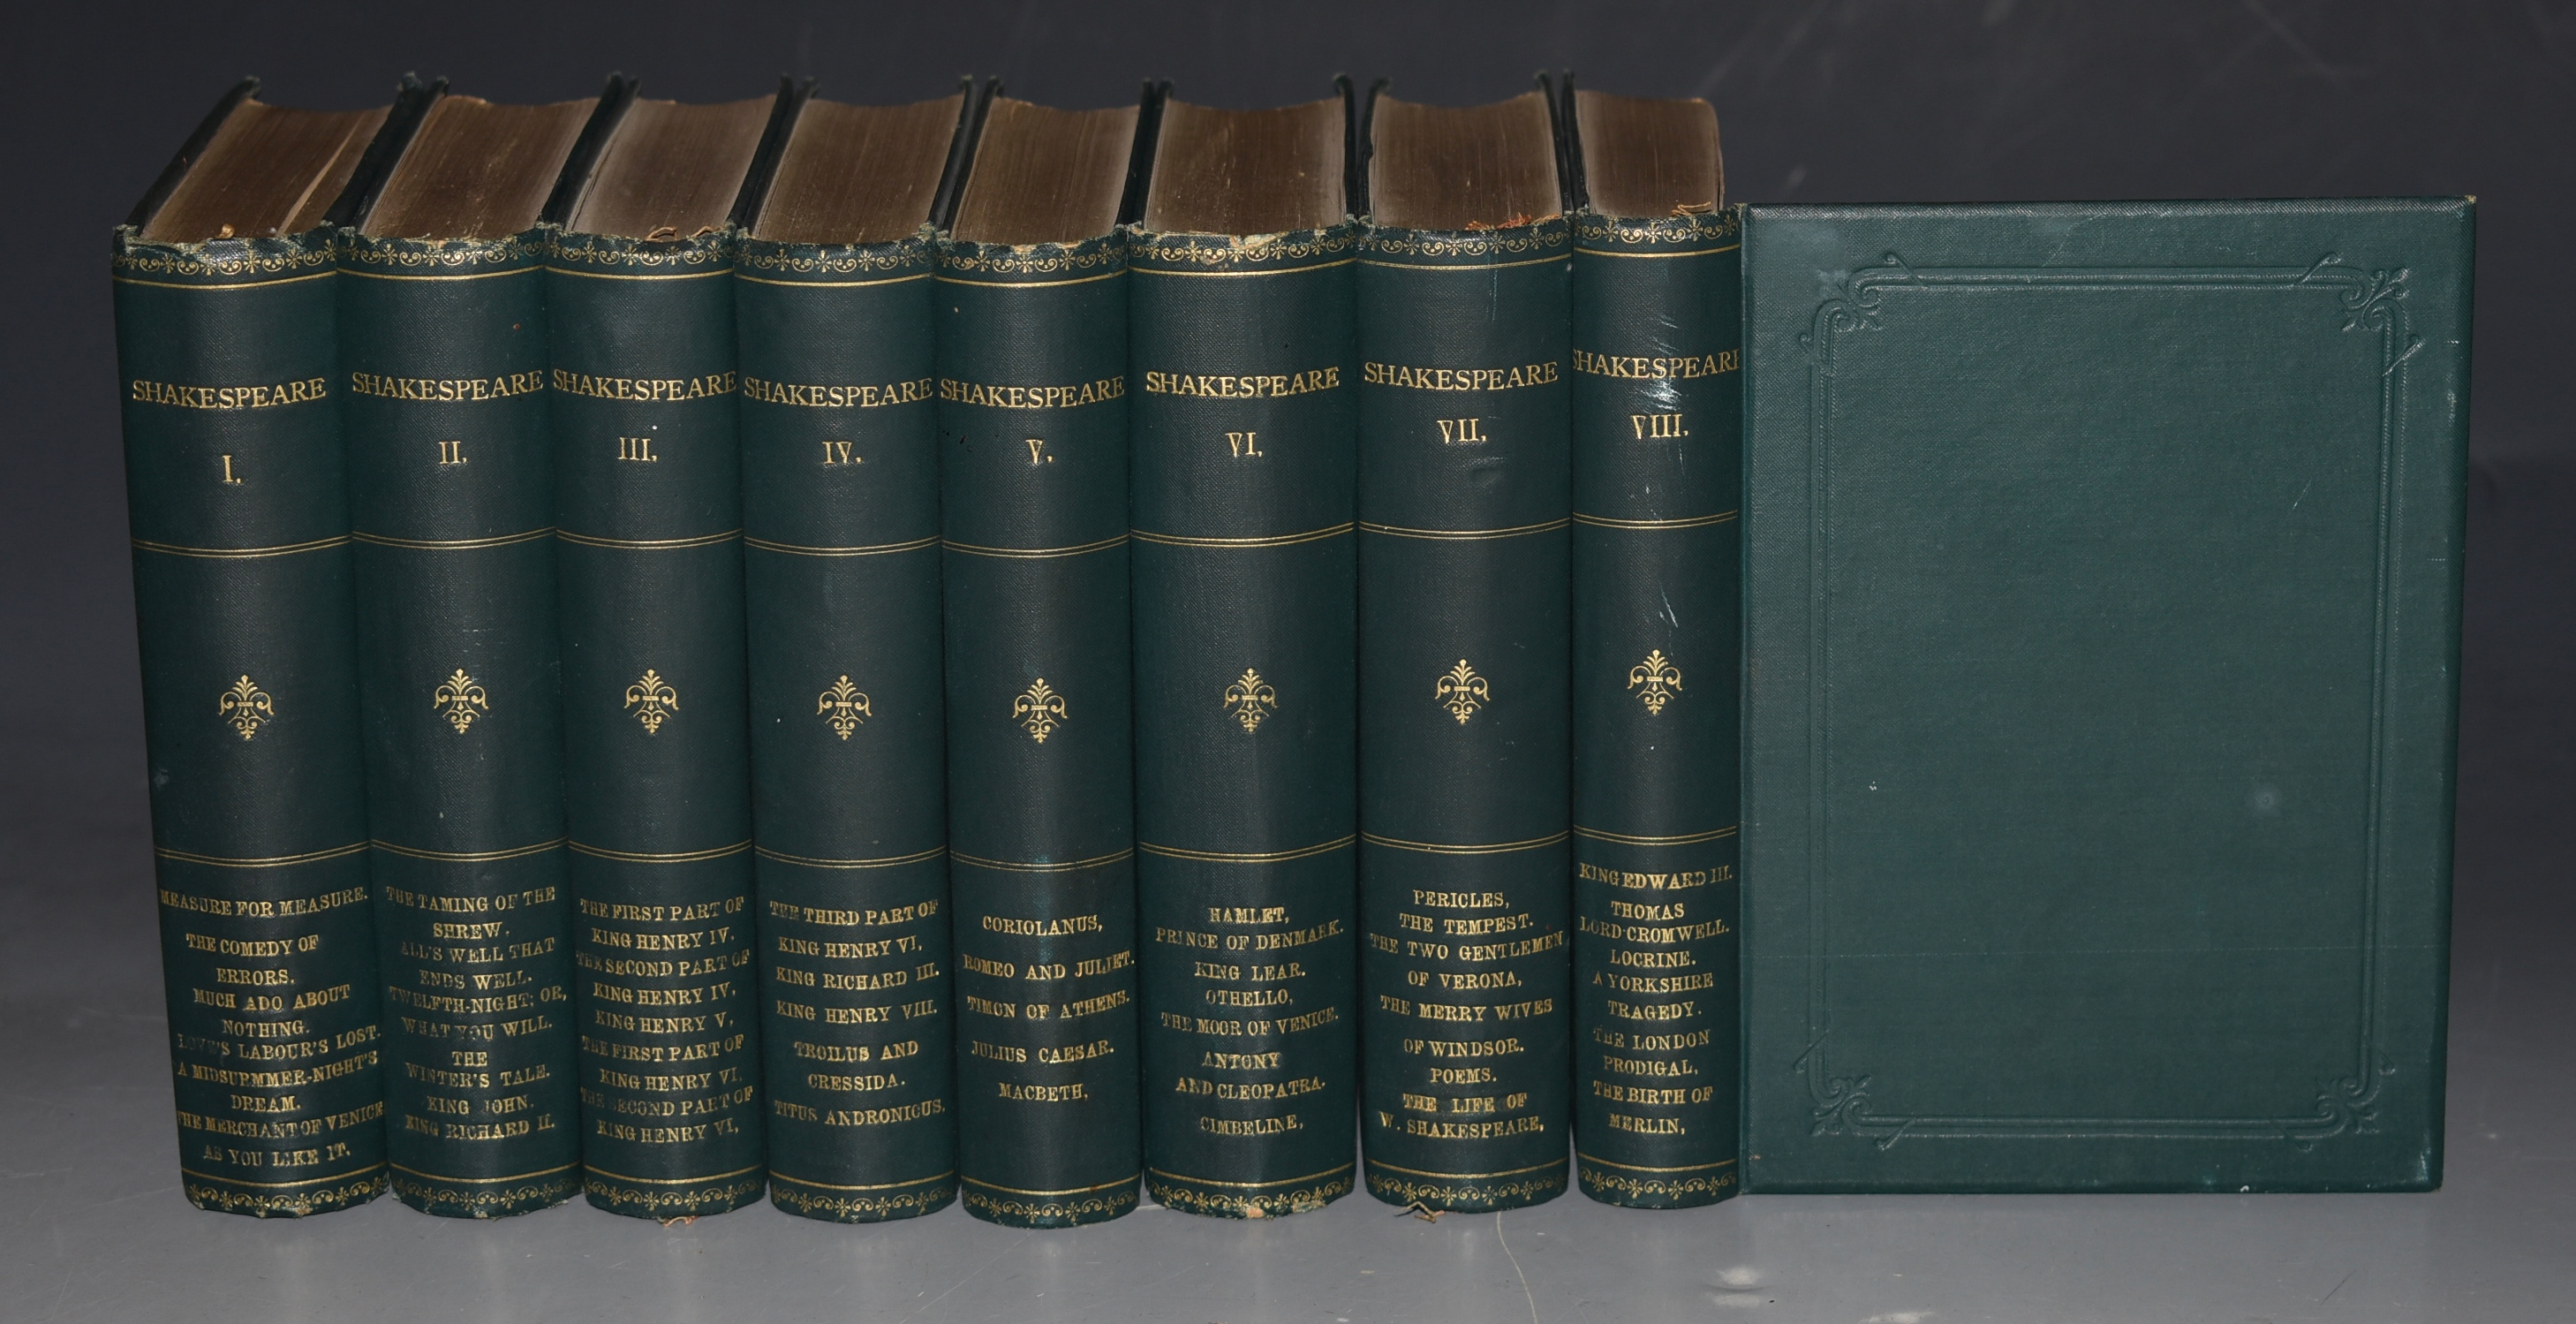 Image for The Works of William Shakespeare, Eight Volume Set. From The Text of The Rev. Alexander Dyce's Second Edition, Complete in Seven Volumes. PLUS: Doubtful Plays, in One Volume. Tauchnitz Collection of British Authors Vols XL - XLVI & 1041.